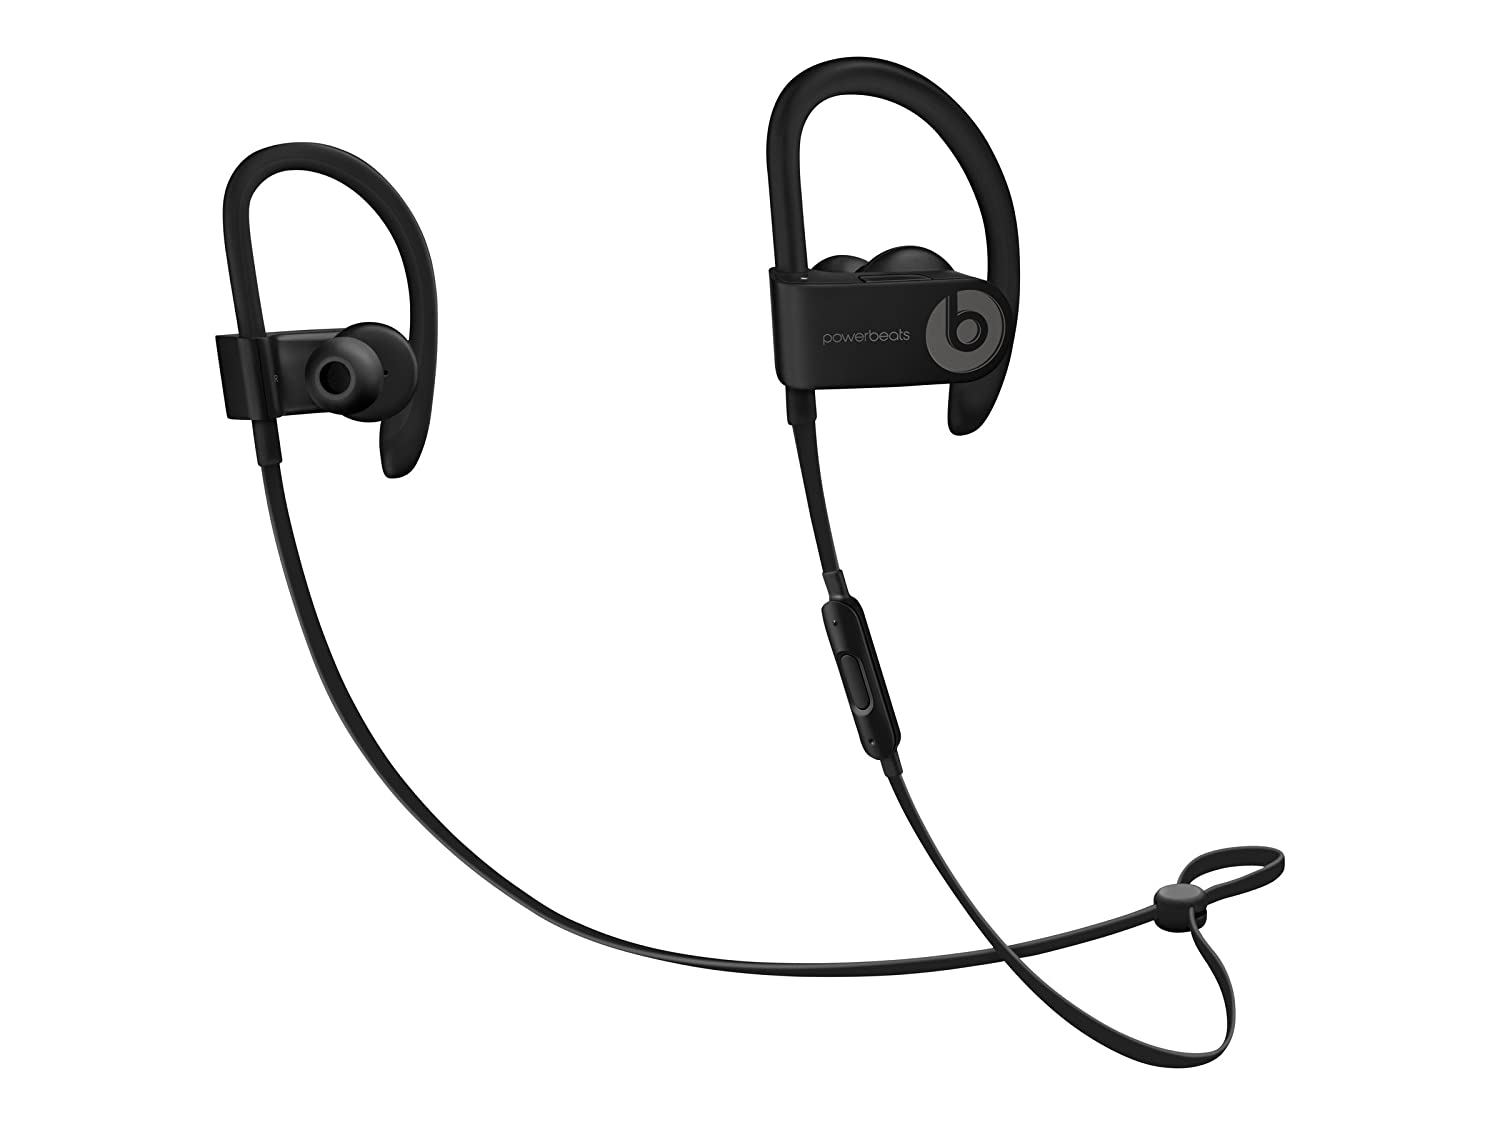 Powerbeats3 Wireless Earphones Black Electronics Lithium Ion 8211 Polymer Usb Battery Charger By Max1811